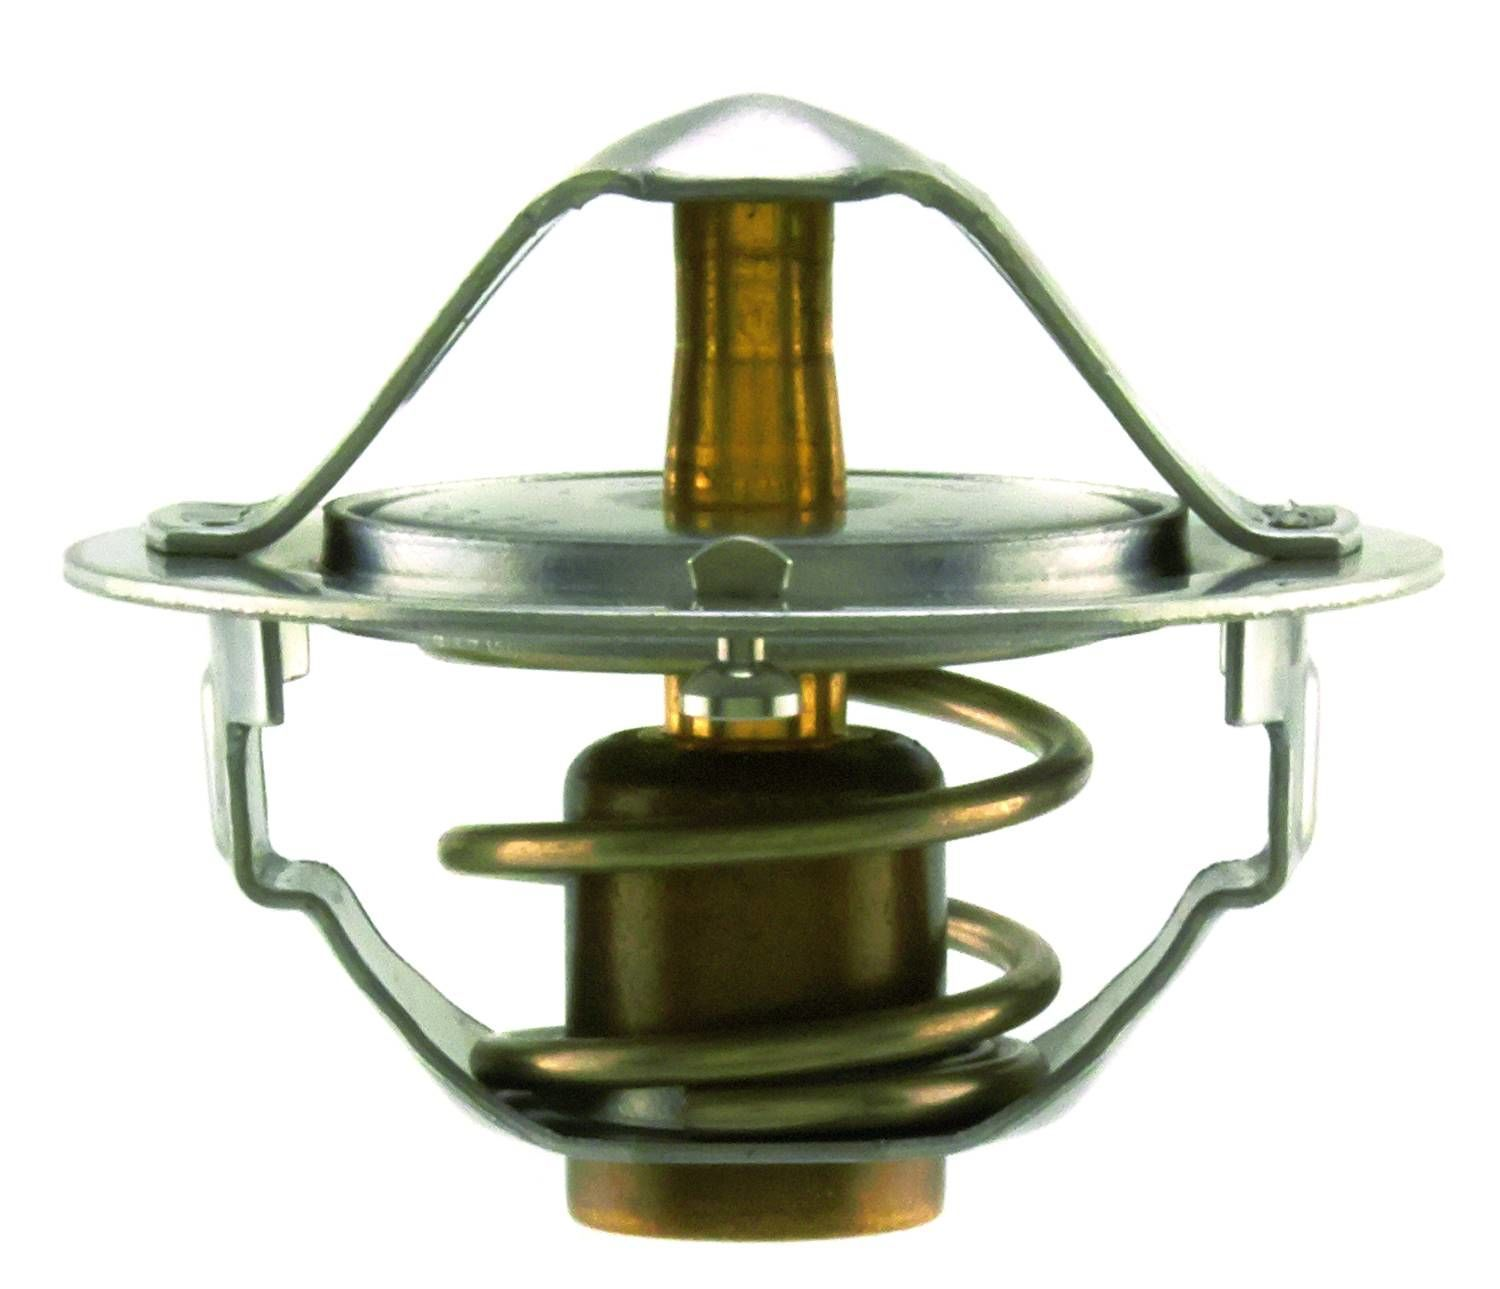 AISIN WORLD CORP. OF AMERICA - Engine Coolant Thermostat - AIS THT-001